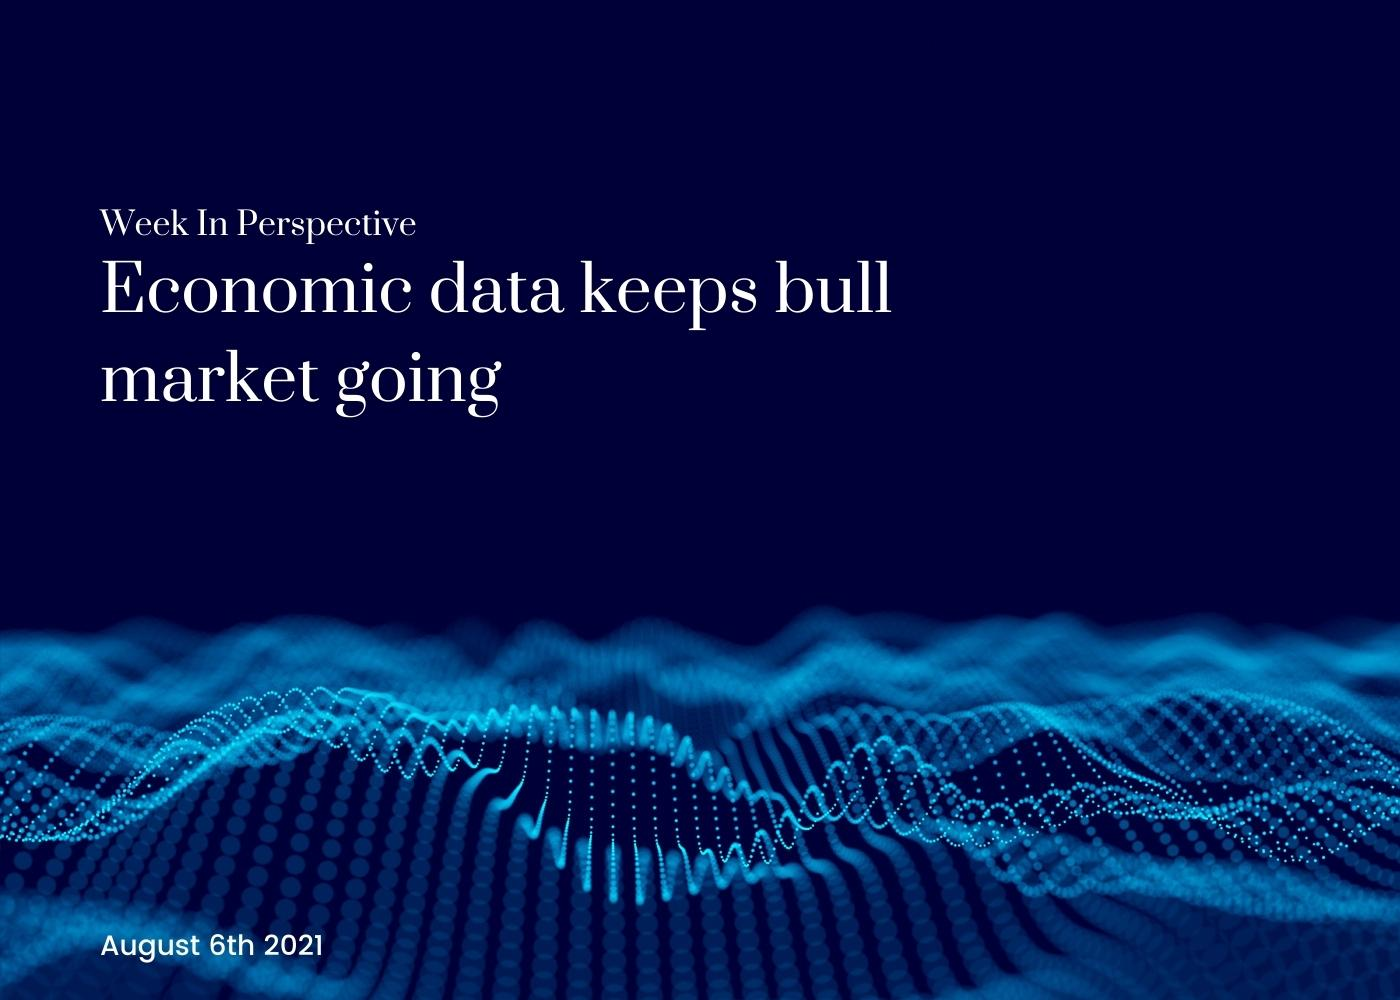 Week In Perspective August 6, 2021: Economic data keeps bull market going Thumbnail